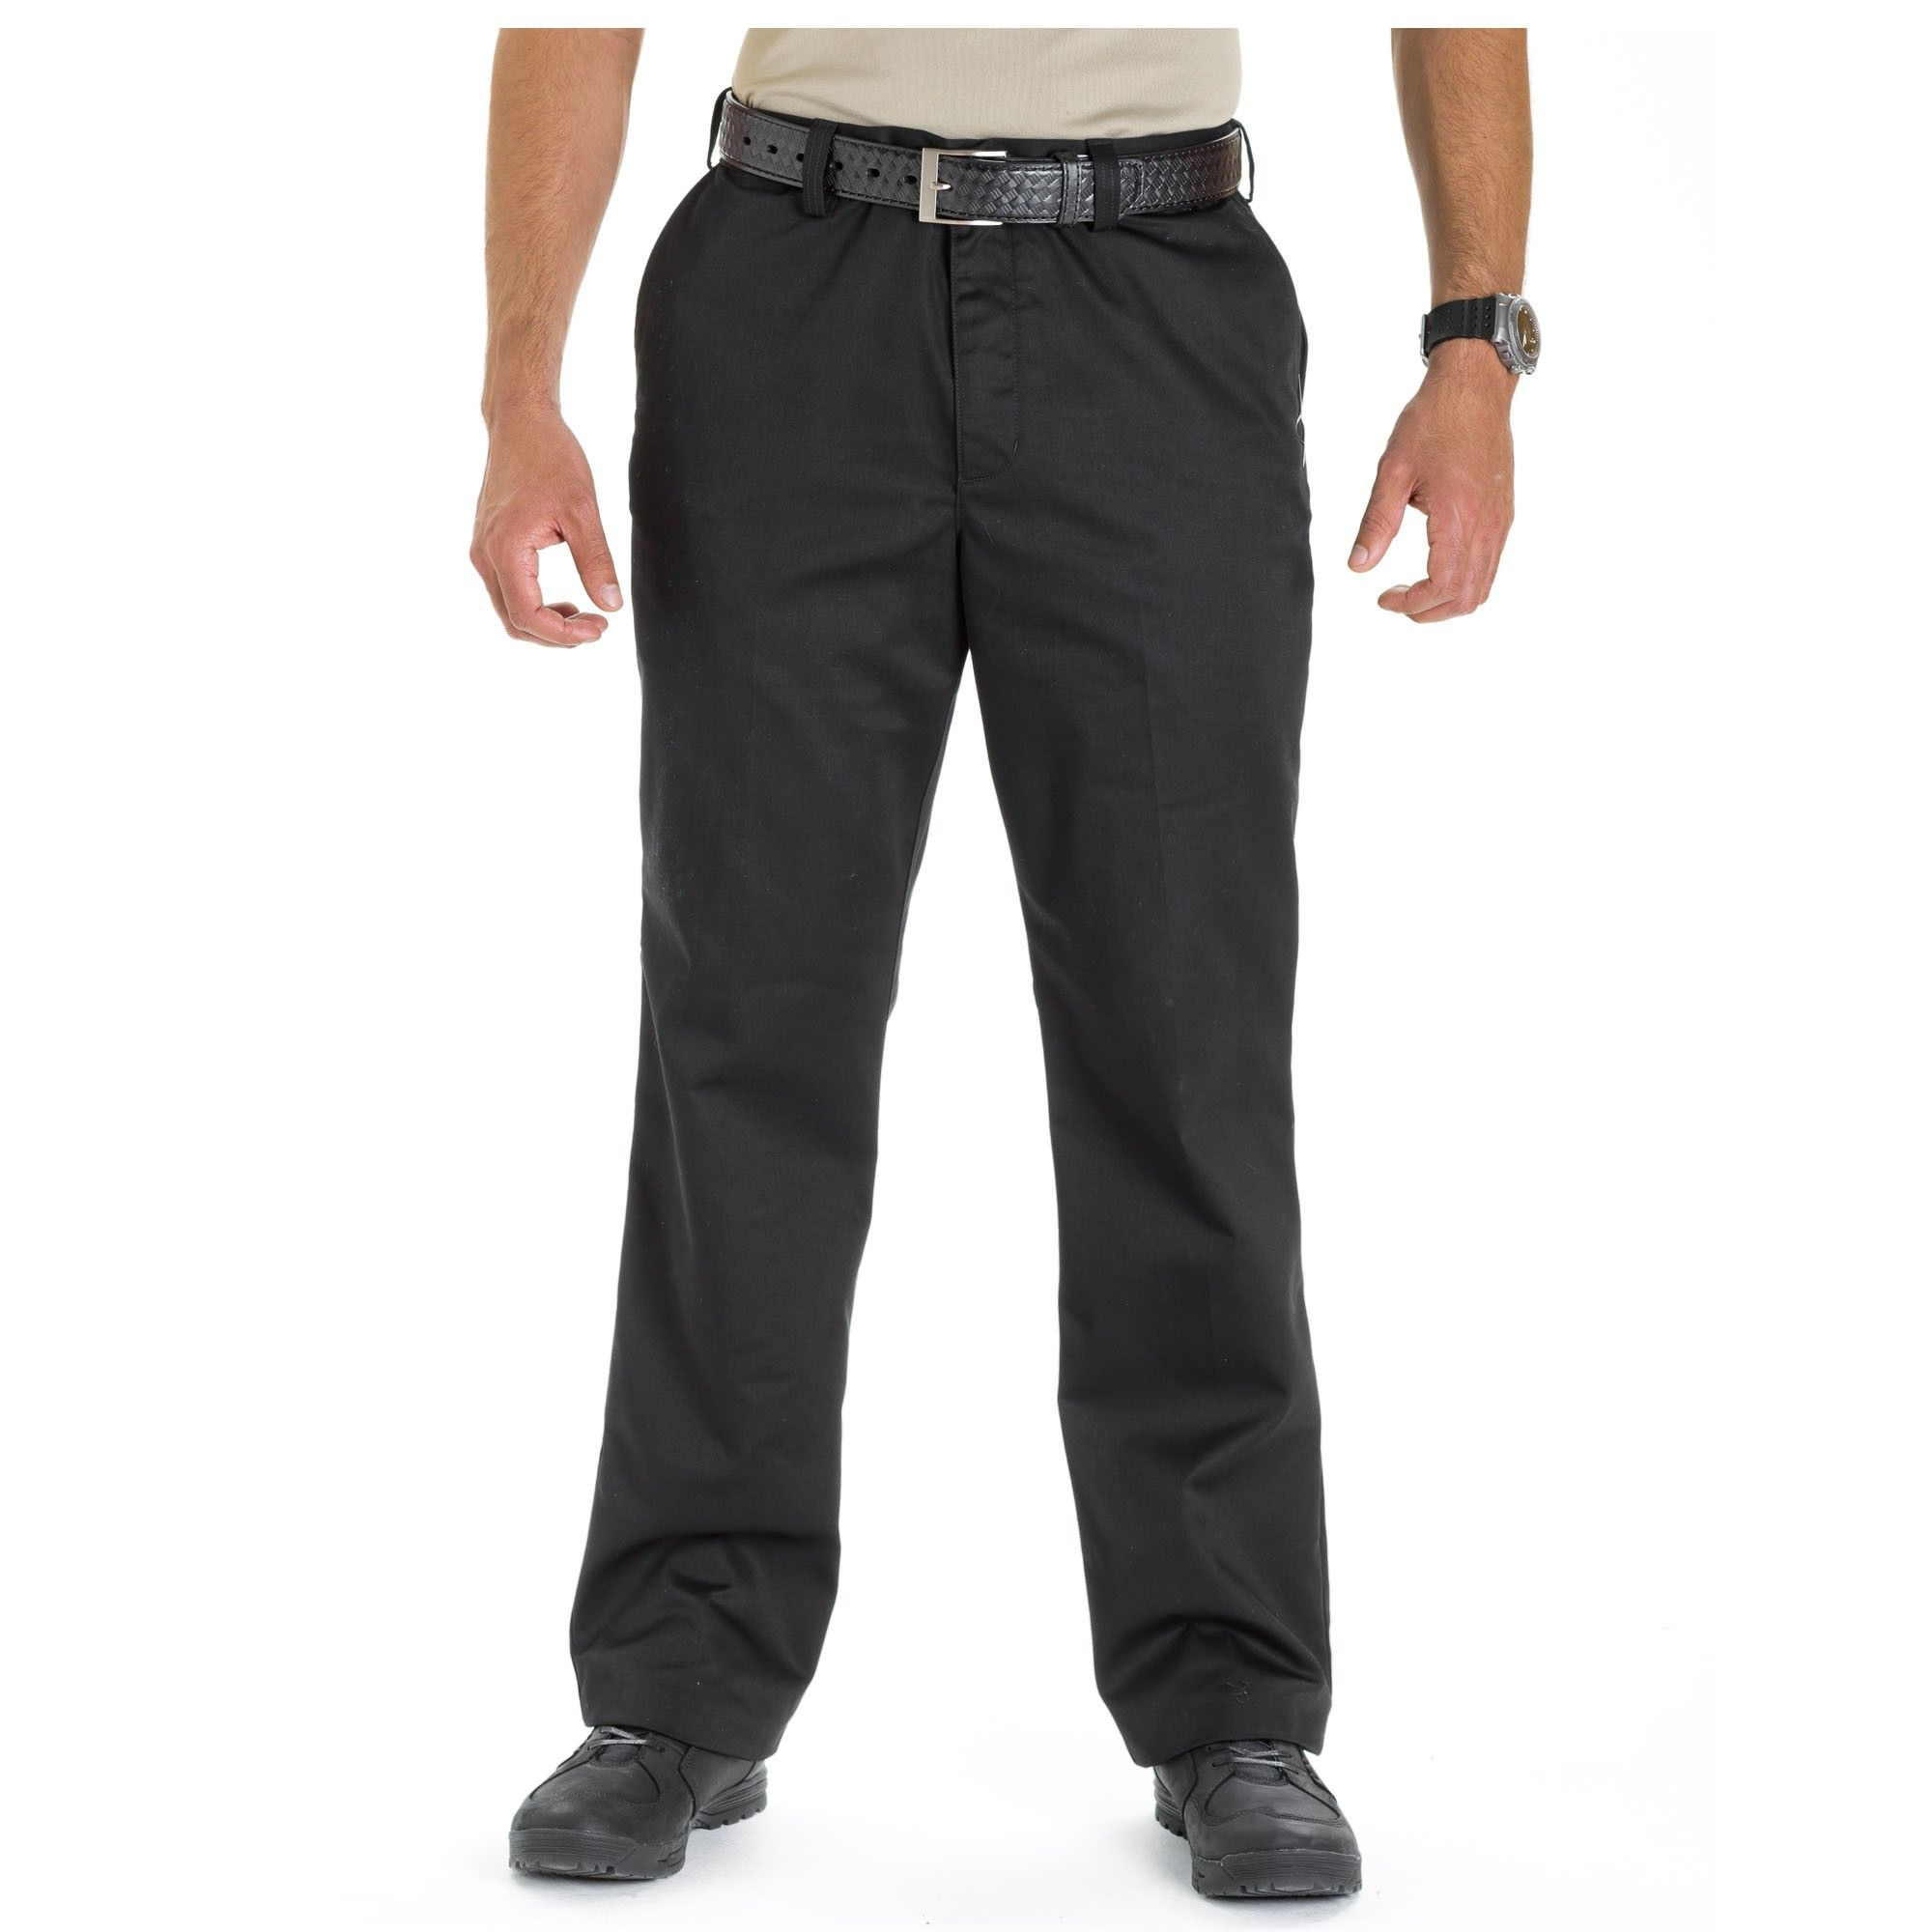 Black Khaki Pants For Men Covert Tactical Dress Pants